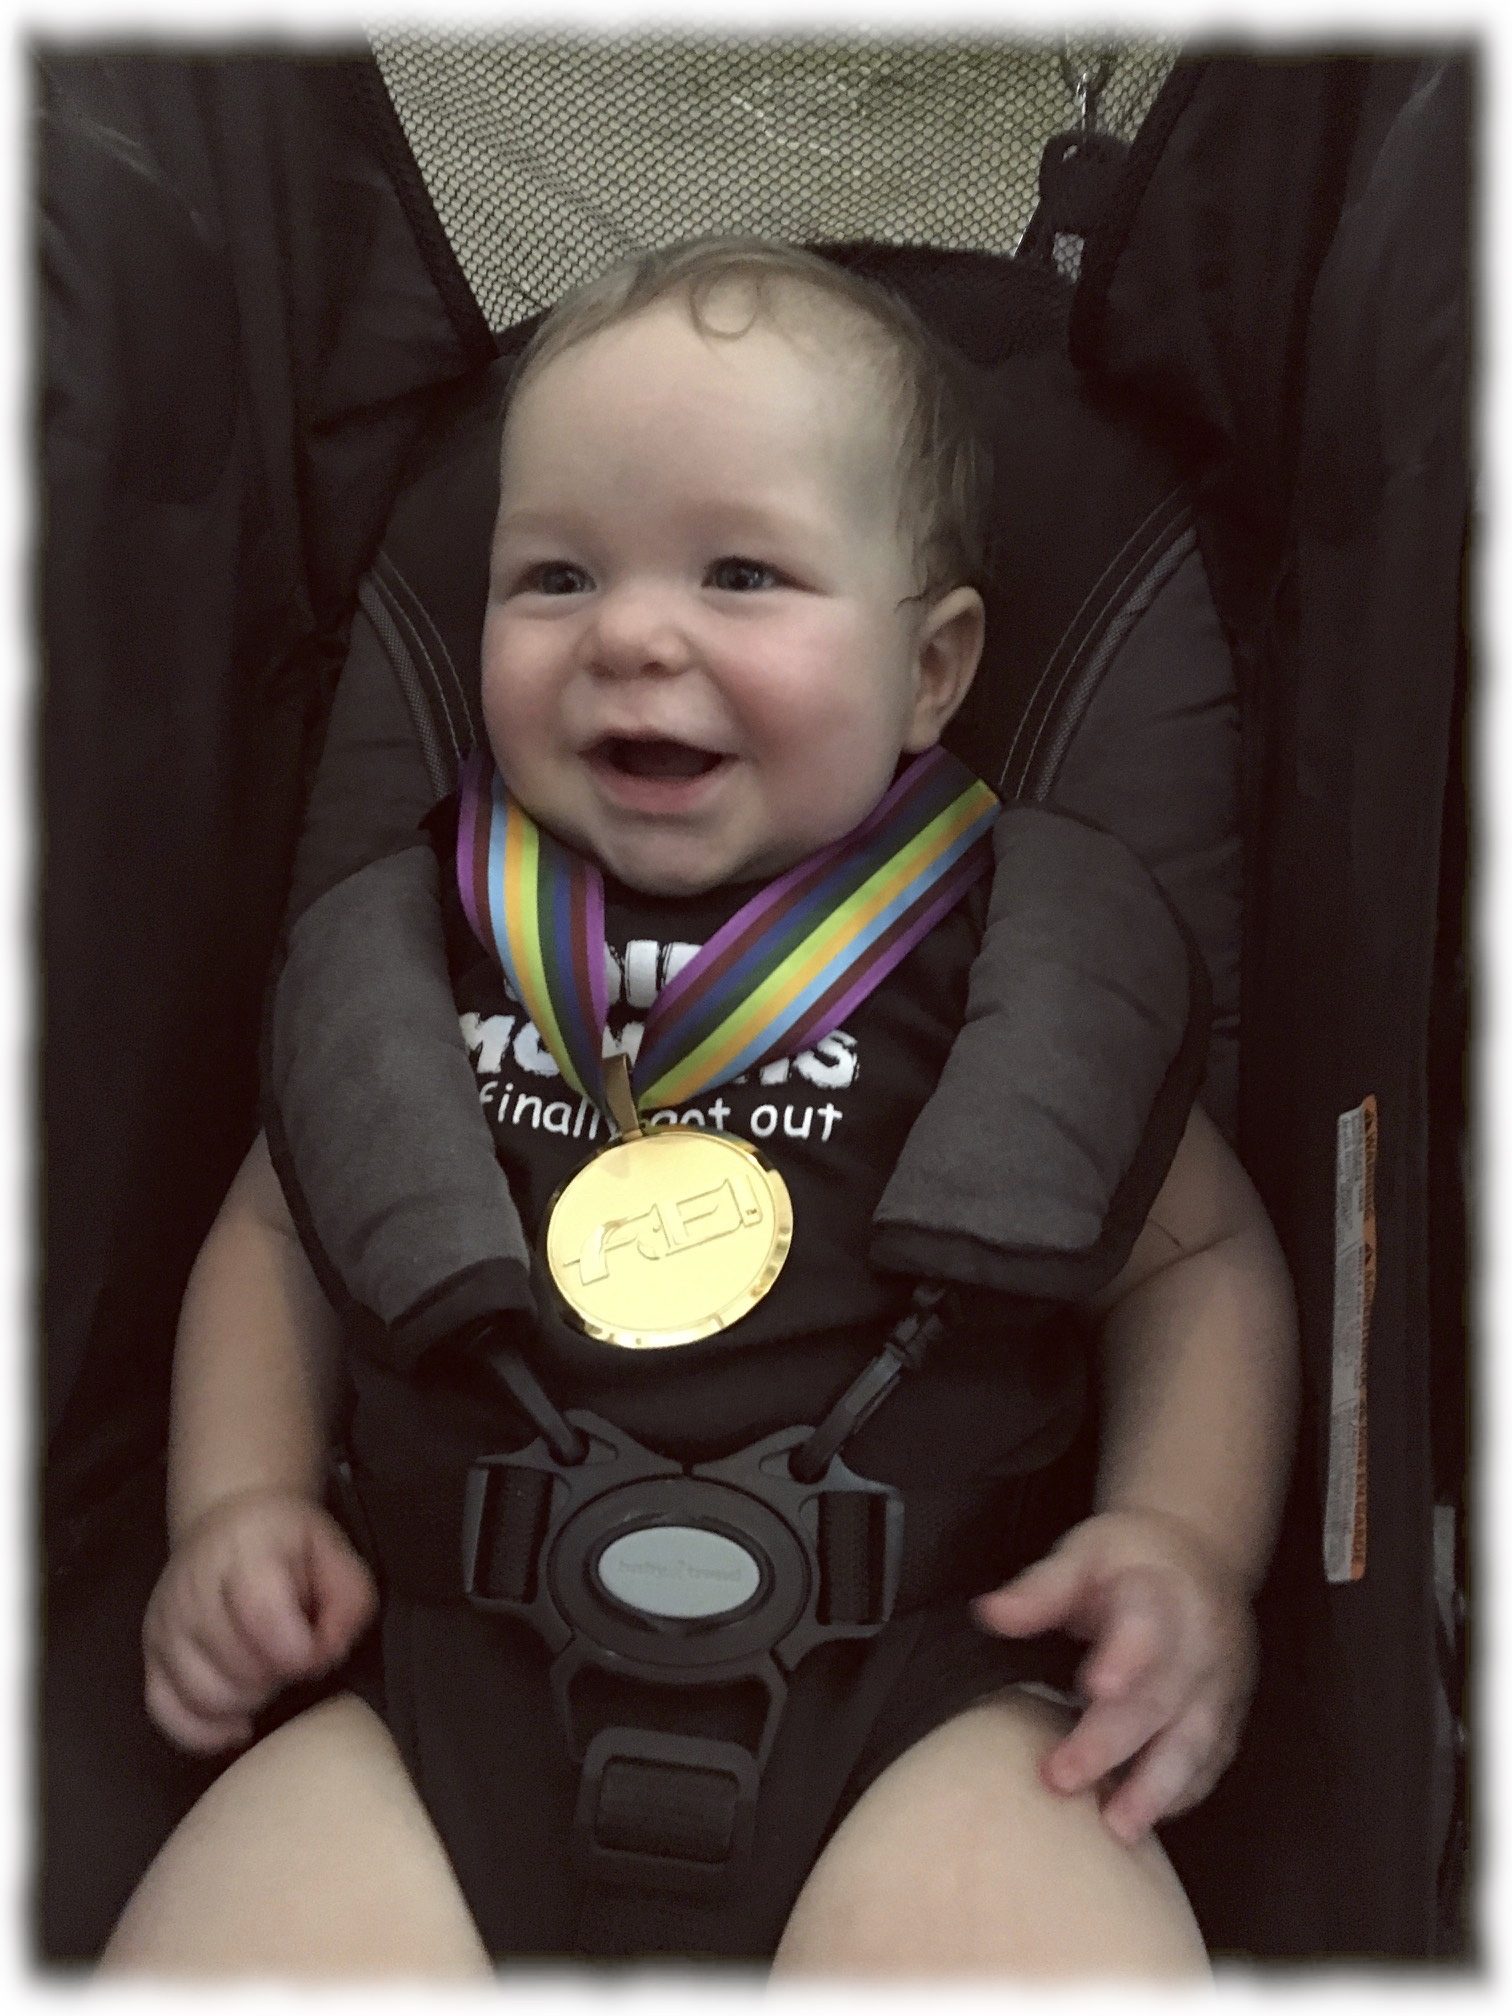 Malcolm James Kuhn & one of Jenna Upchurch's medals